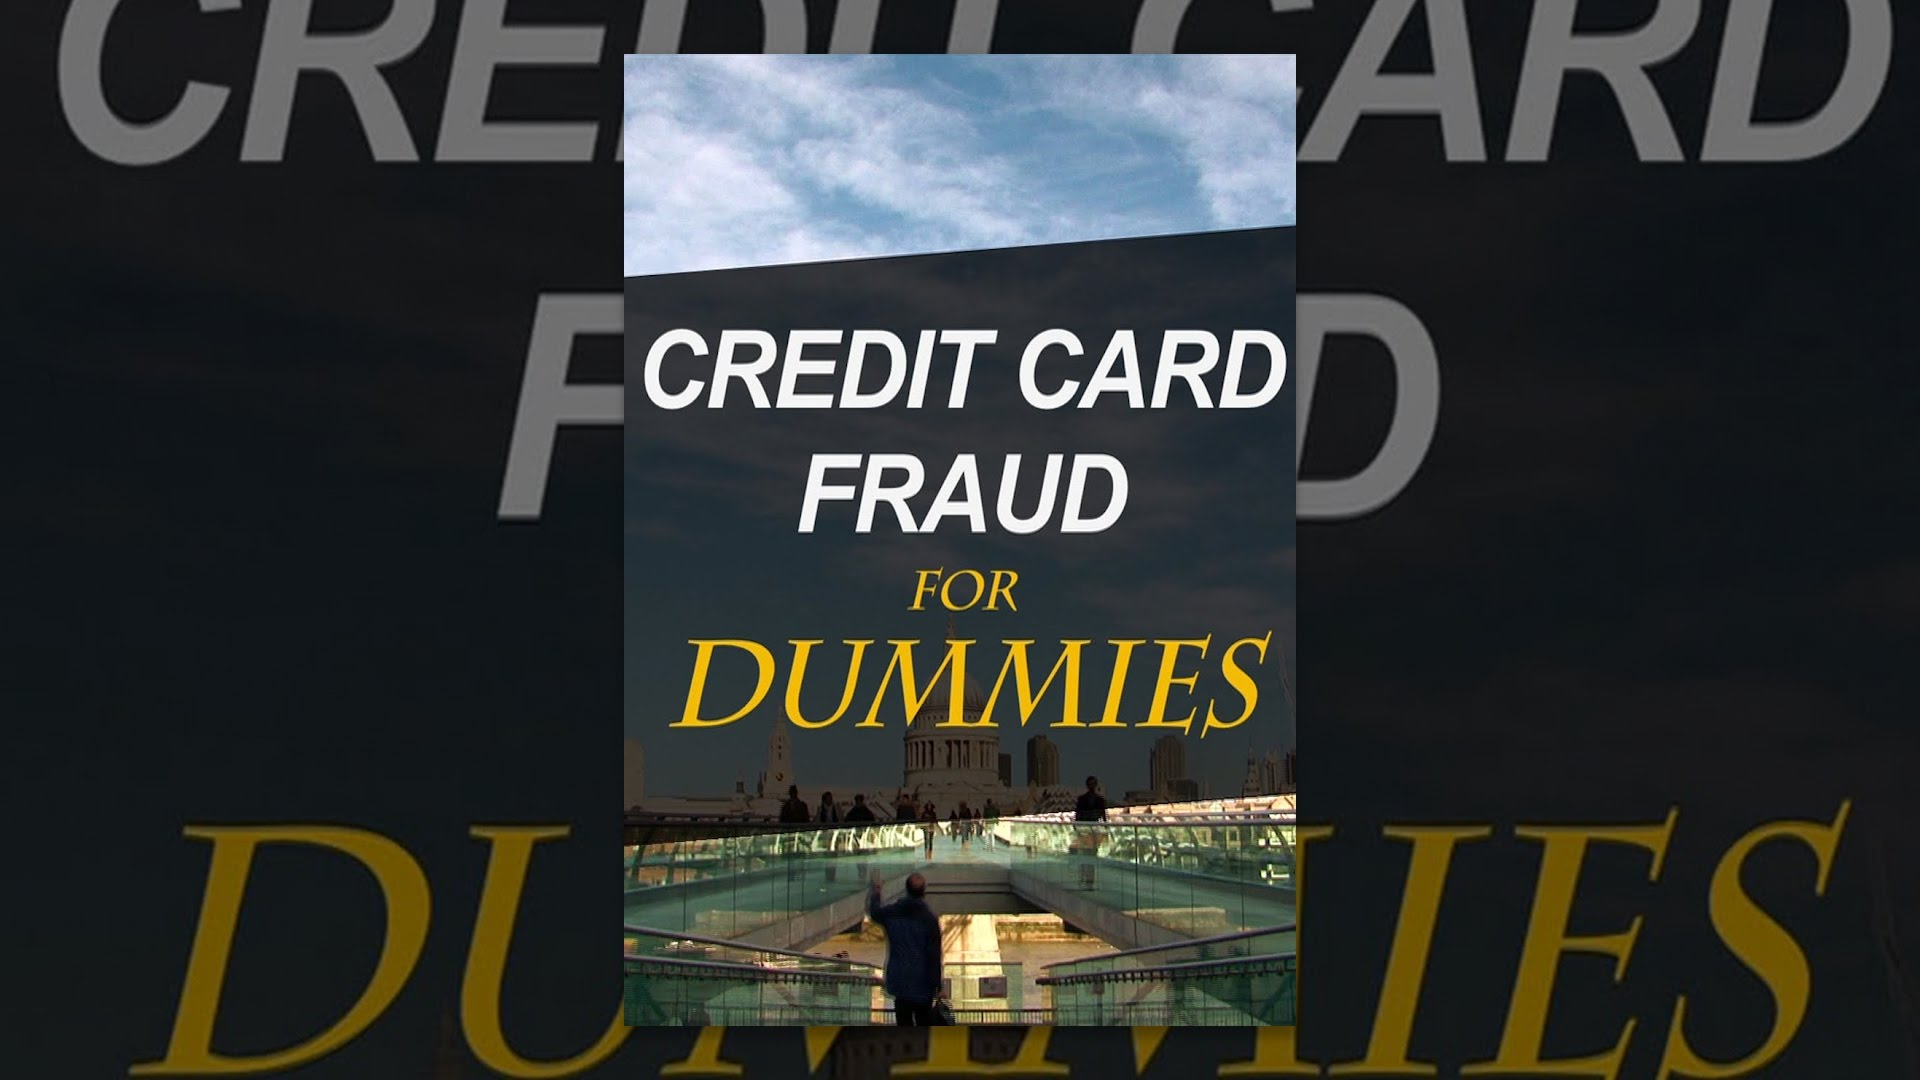 Charge Card Scams for Dummies thumbnail